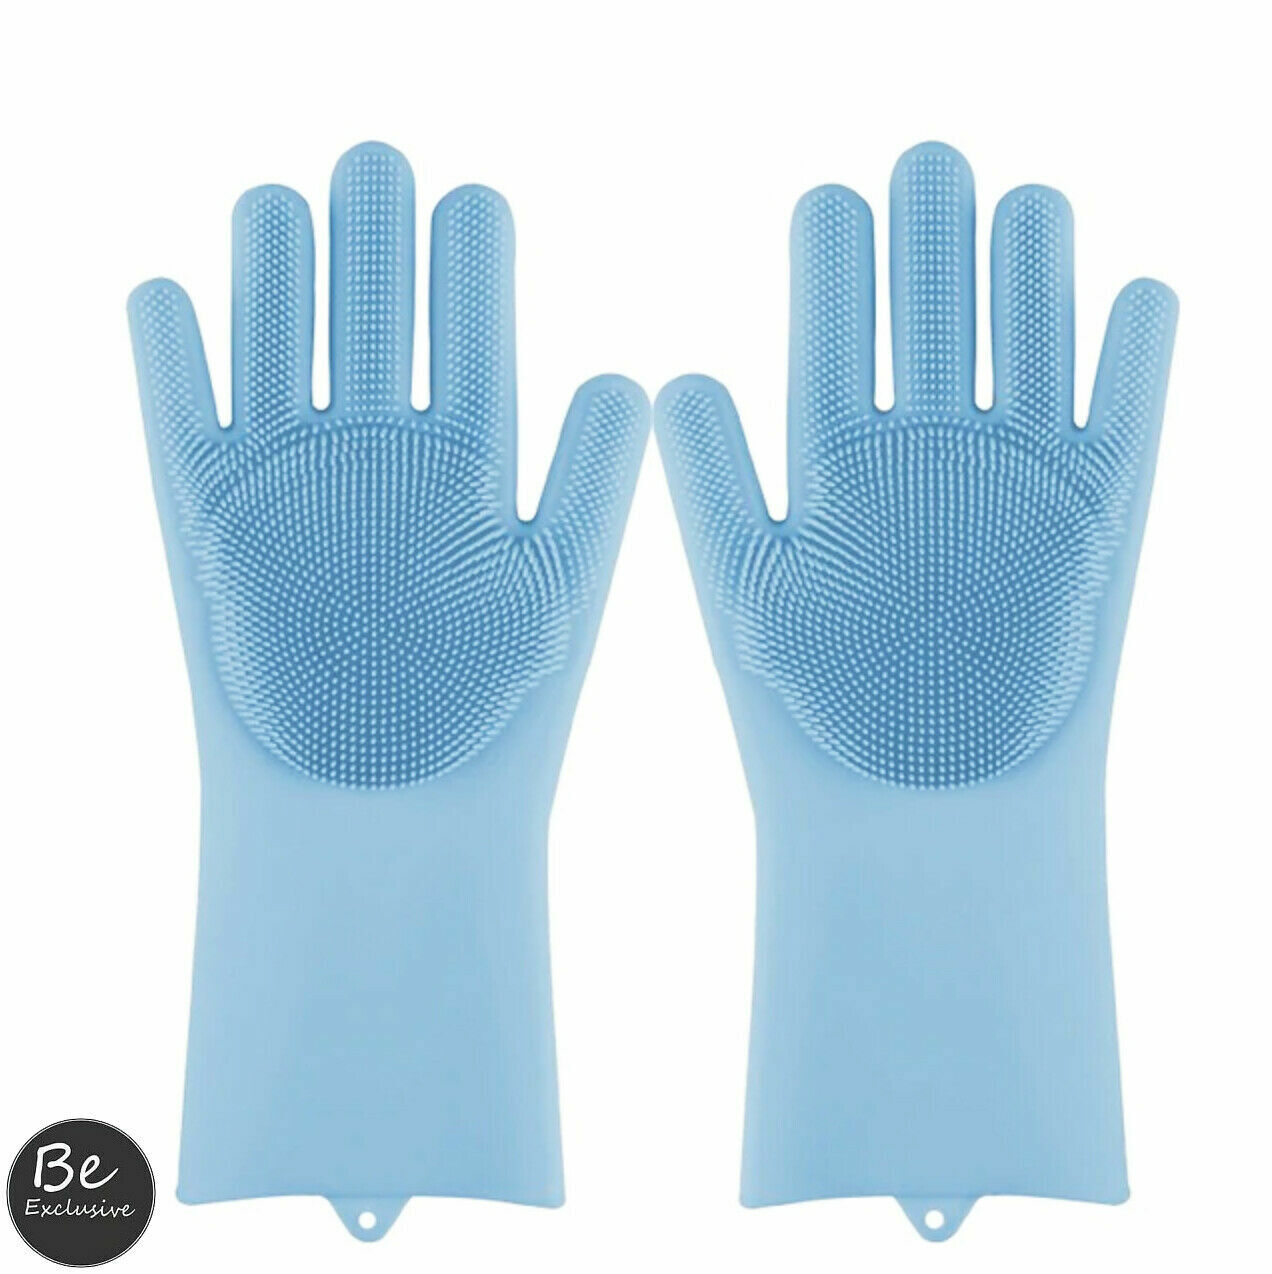 Magic Gloves Dish Washing Silicone Rubber Scrubber Cleaning Green Color 2 in 1 Cleaning Products